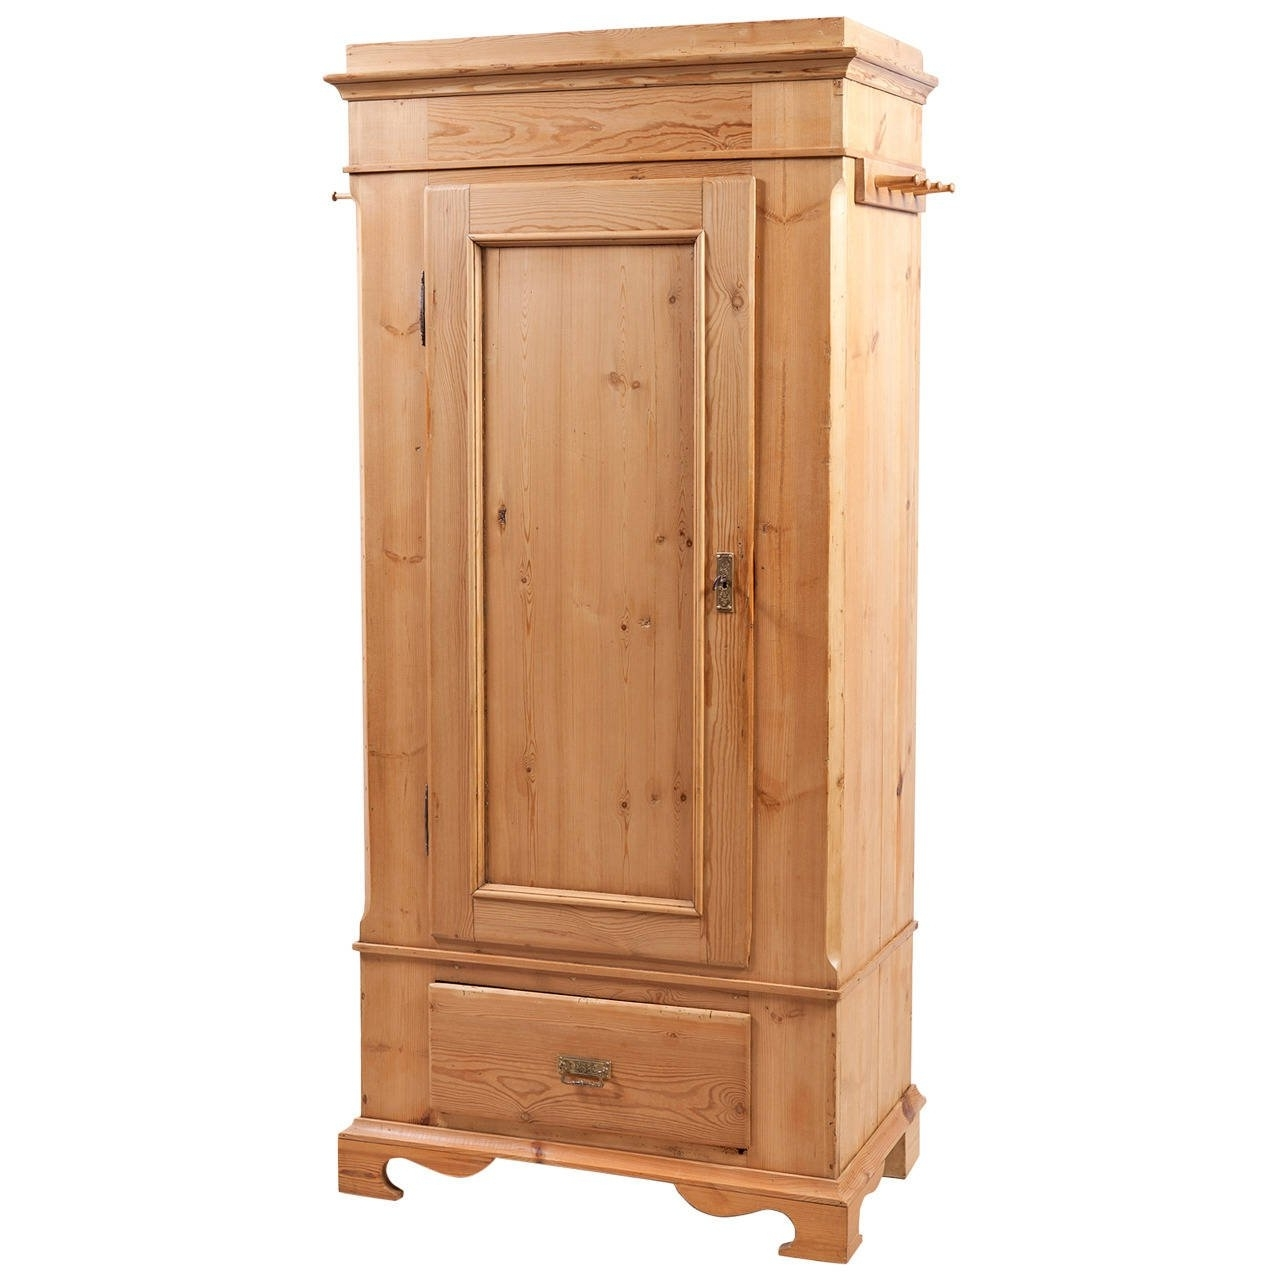 Popular Single Door Danish Wardrobe Armoire In Pine, Circa 1845 At 1stdibs With Regard To Pine Wardrobes With Drawers (View 14 of 15)